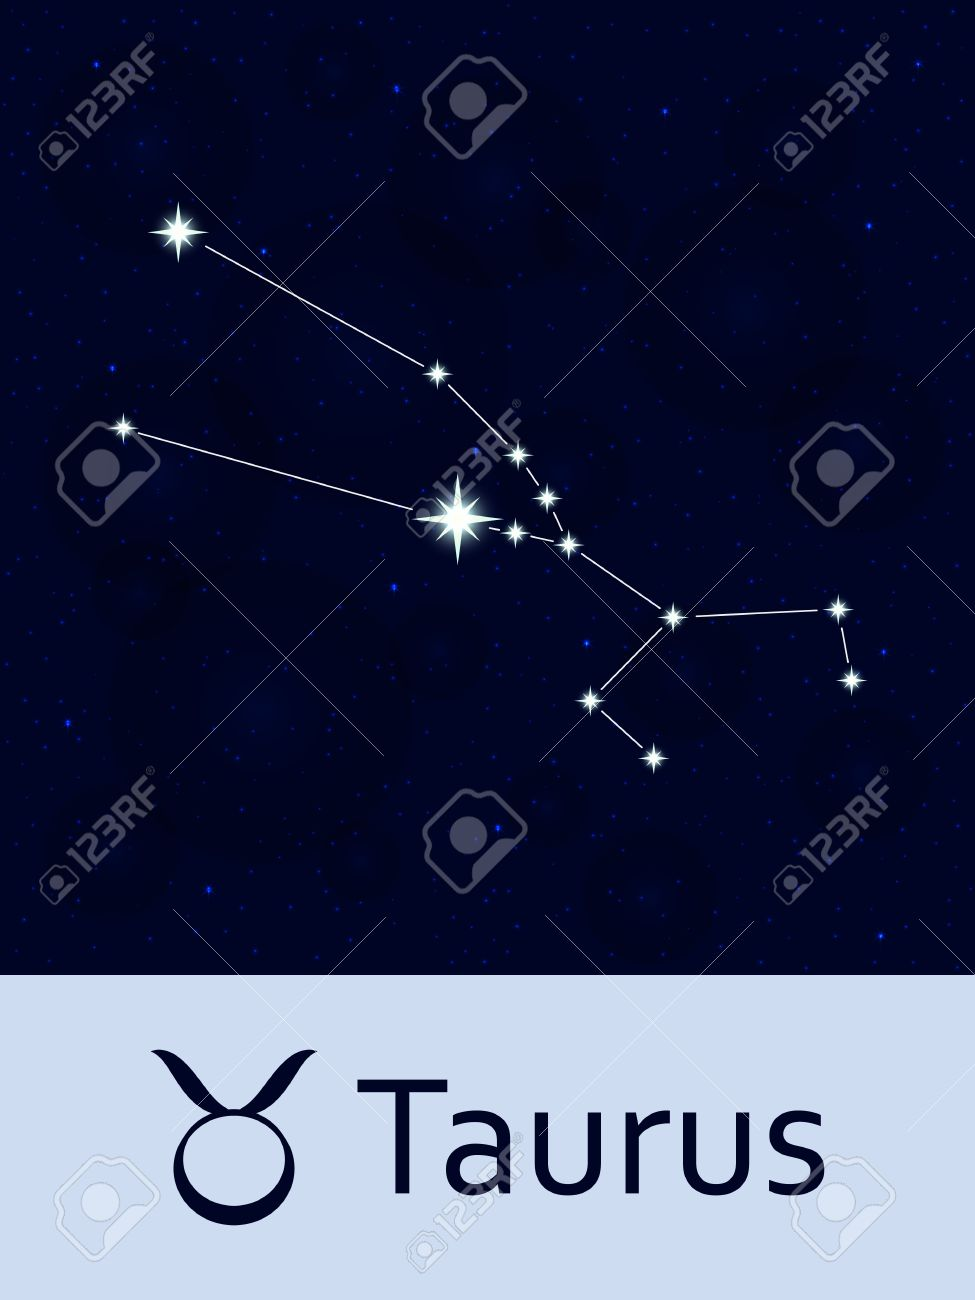 Zodiac sign Taurus  Horoscope constellation star  Abstract space